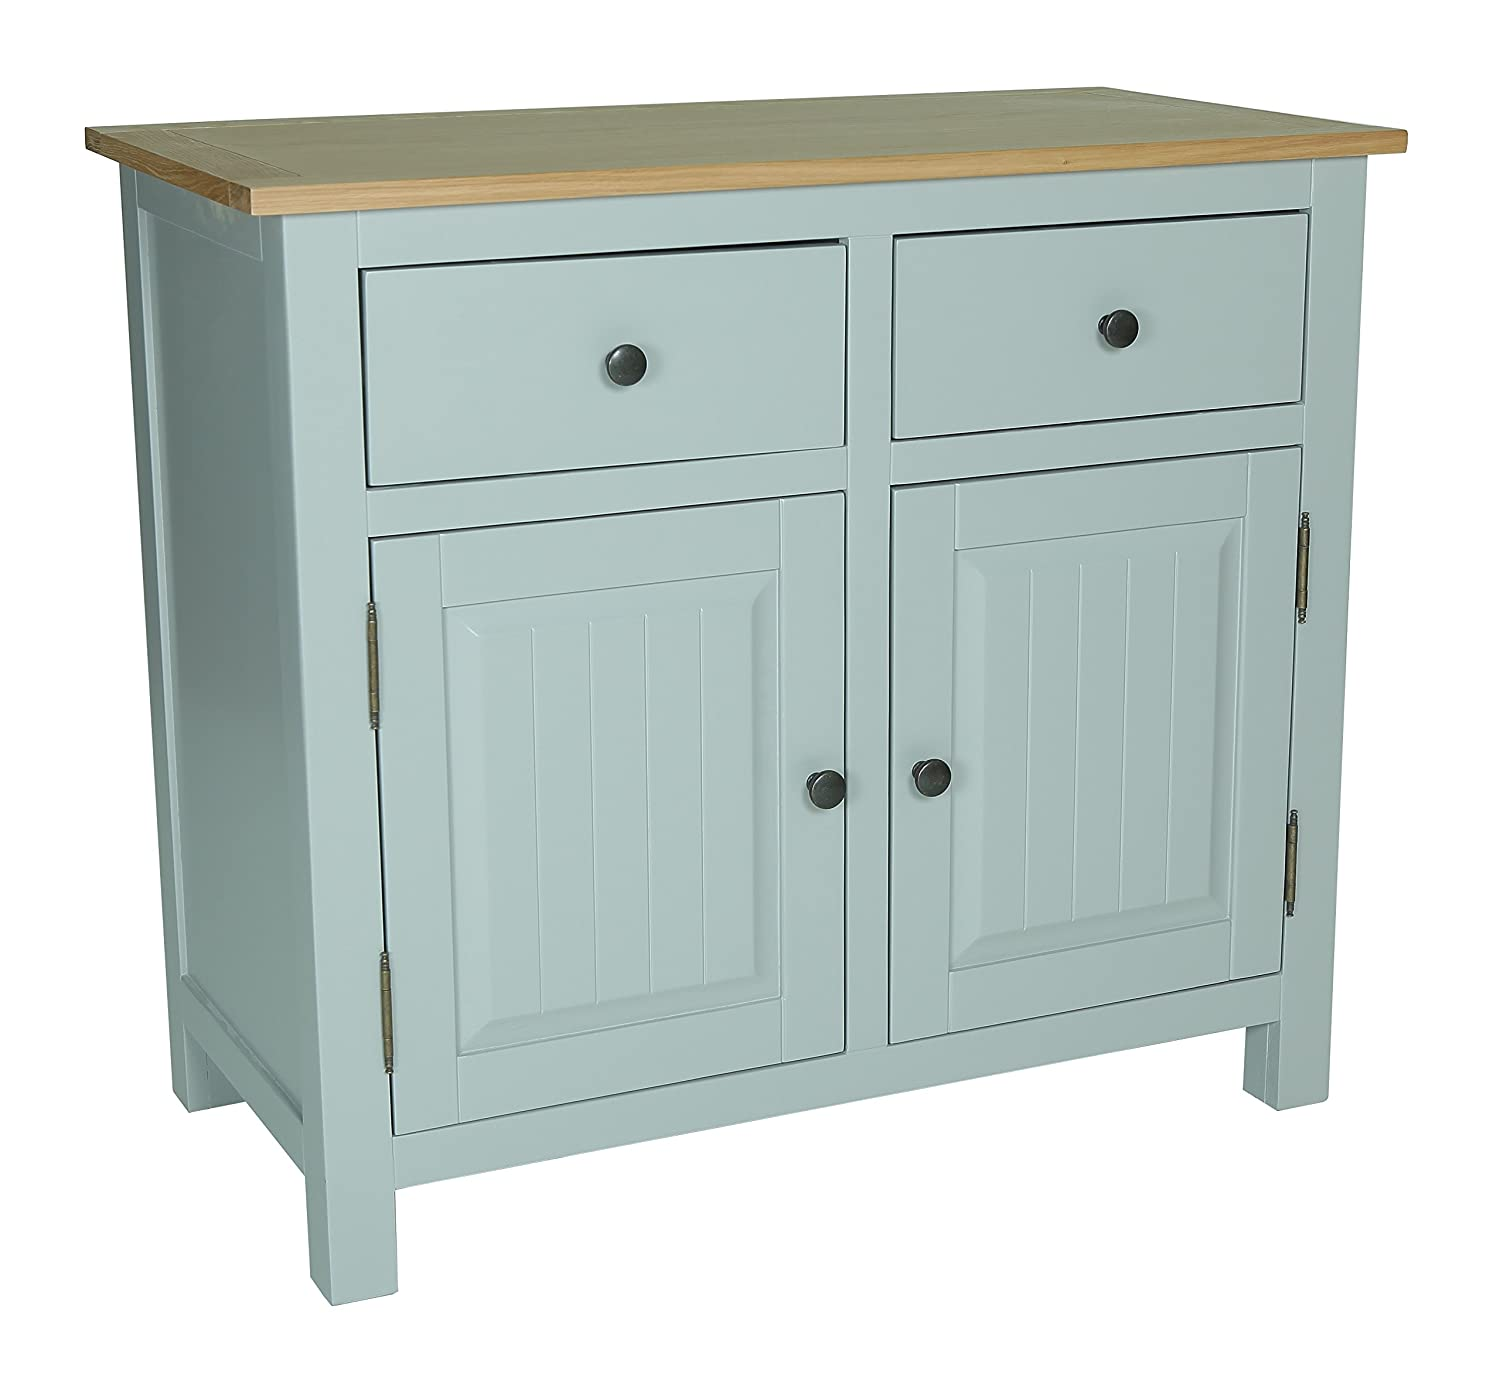 Newcam Wooden Sideboard, Small - Natural Oak and Cream: Amazon.co.uk ...